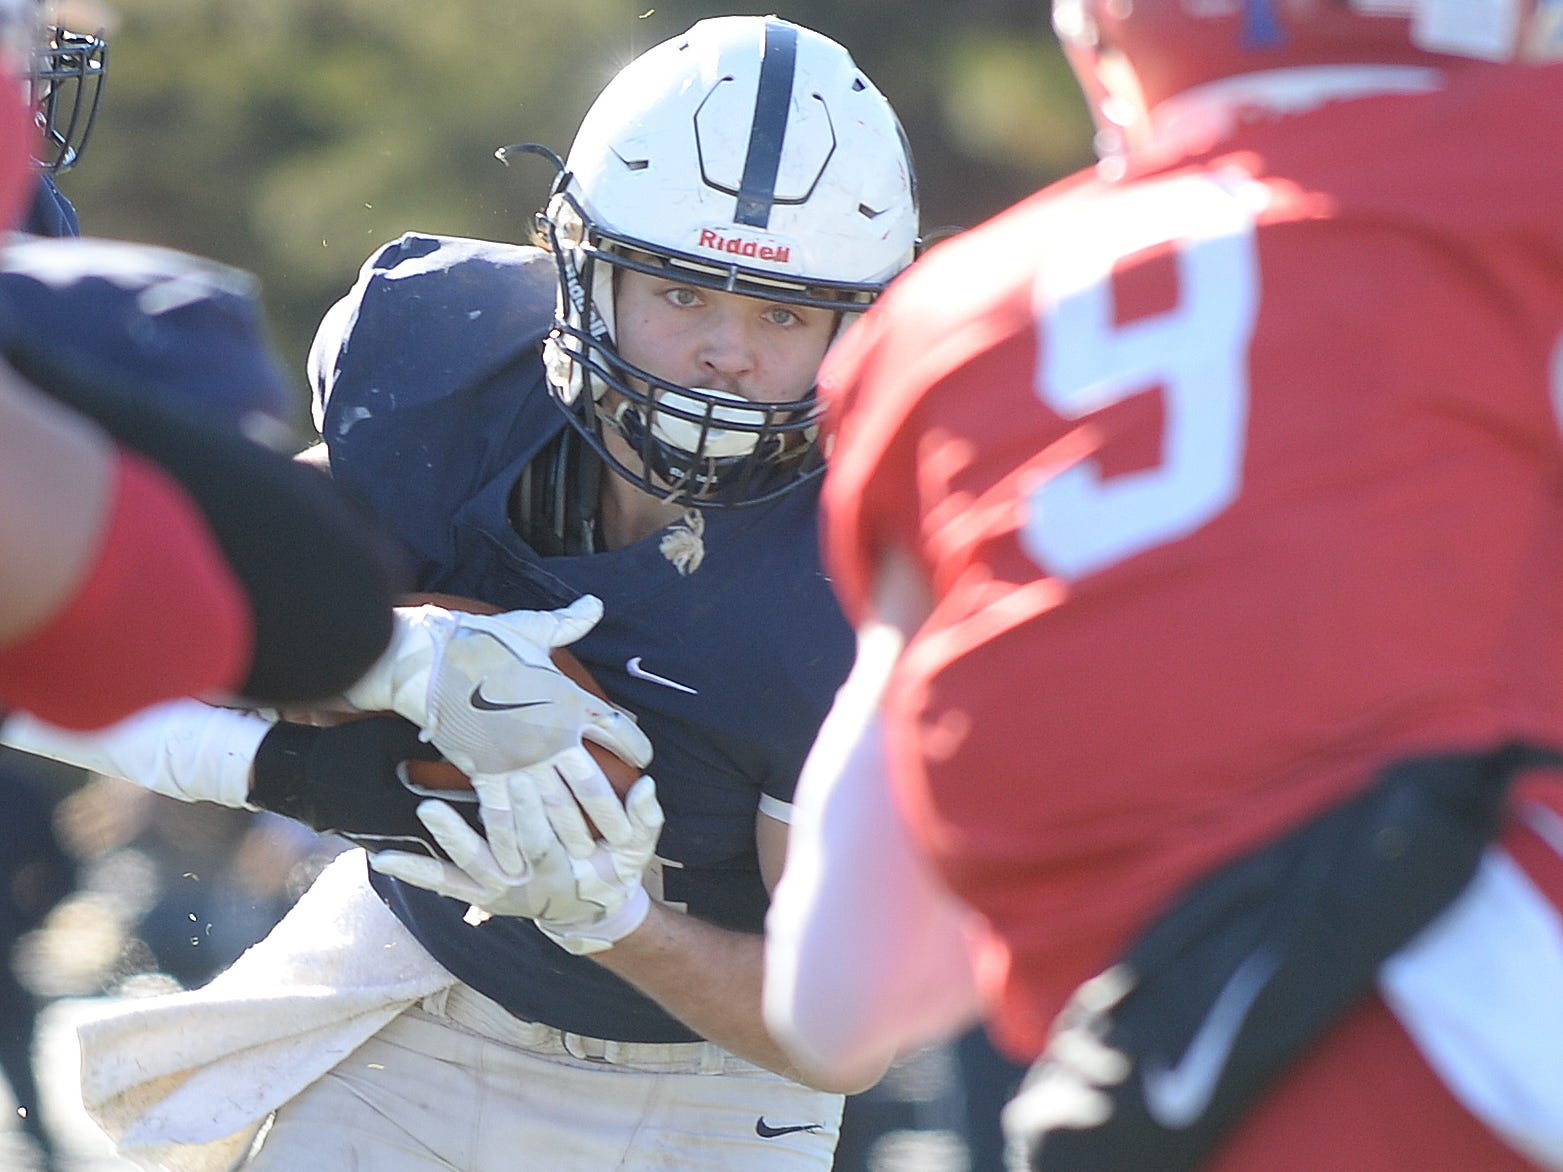 Shawnee's Joey Dalsey carries the ball during the Thanksgiving Day football game against Lenape at Shawnee High School, Thursday, Nov. 22, 2018.